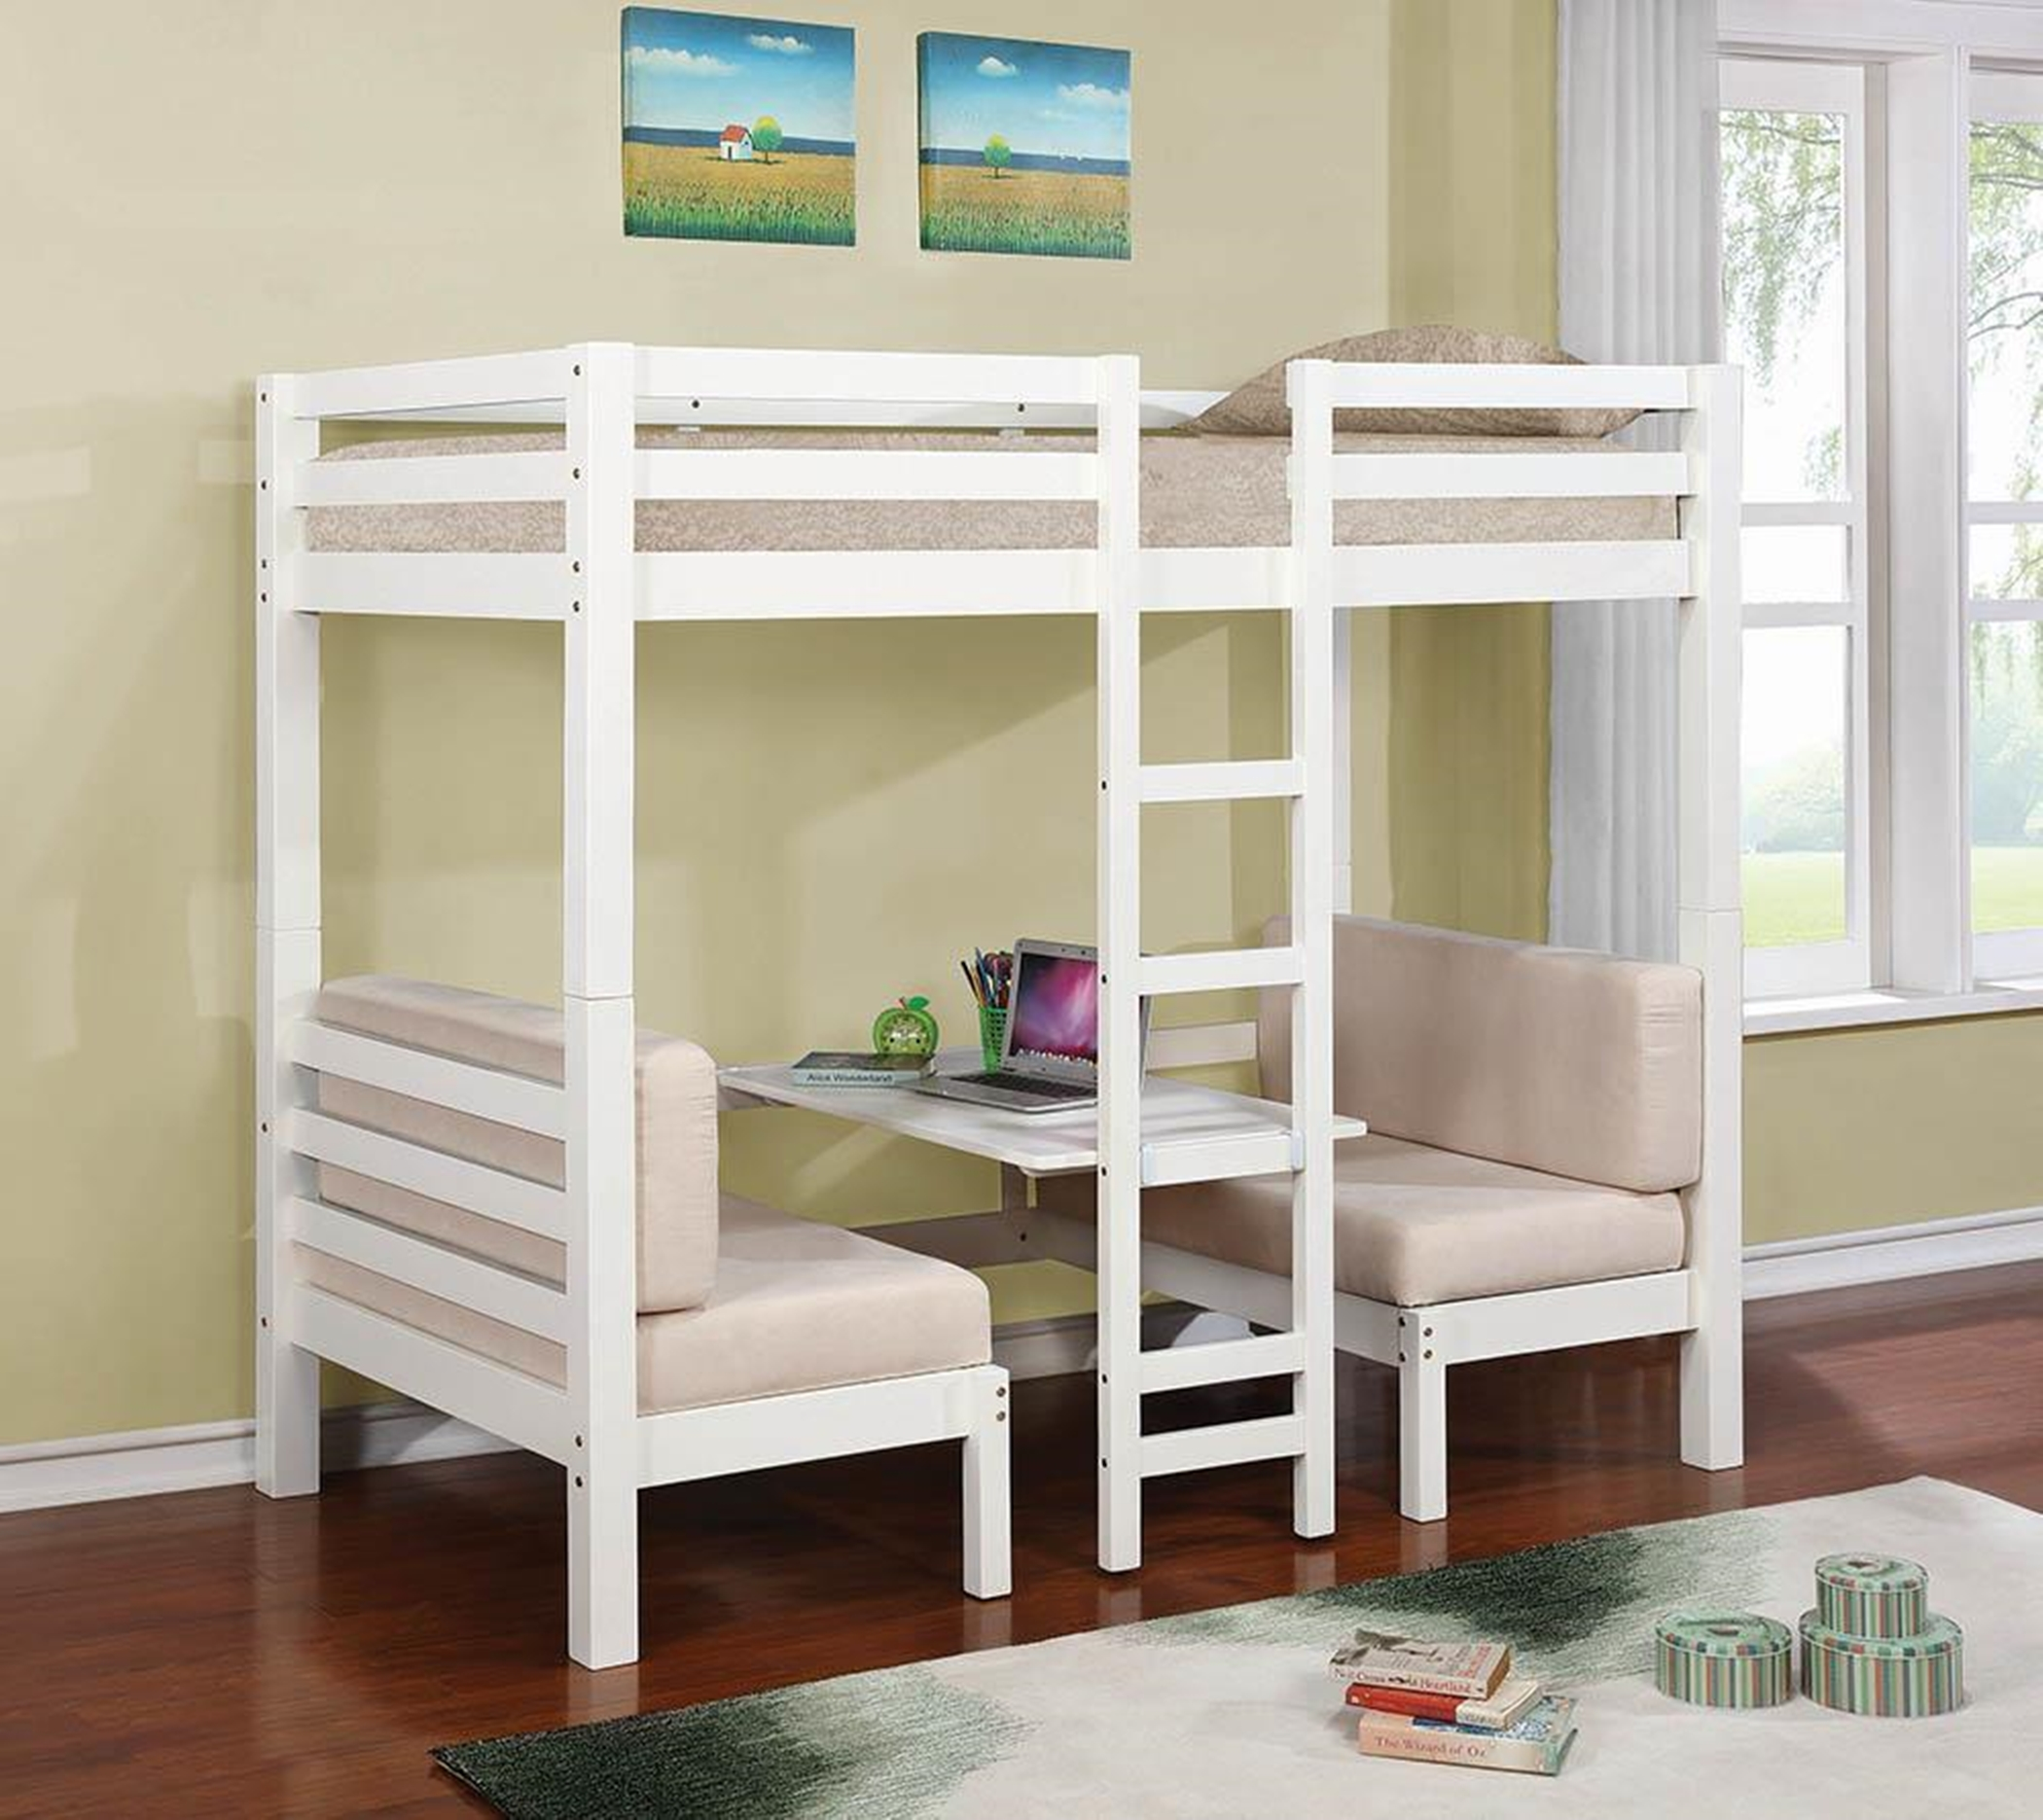 Joaquin Transitional White Twin-over-Twin Bunk Bed